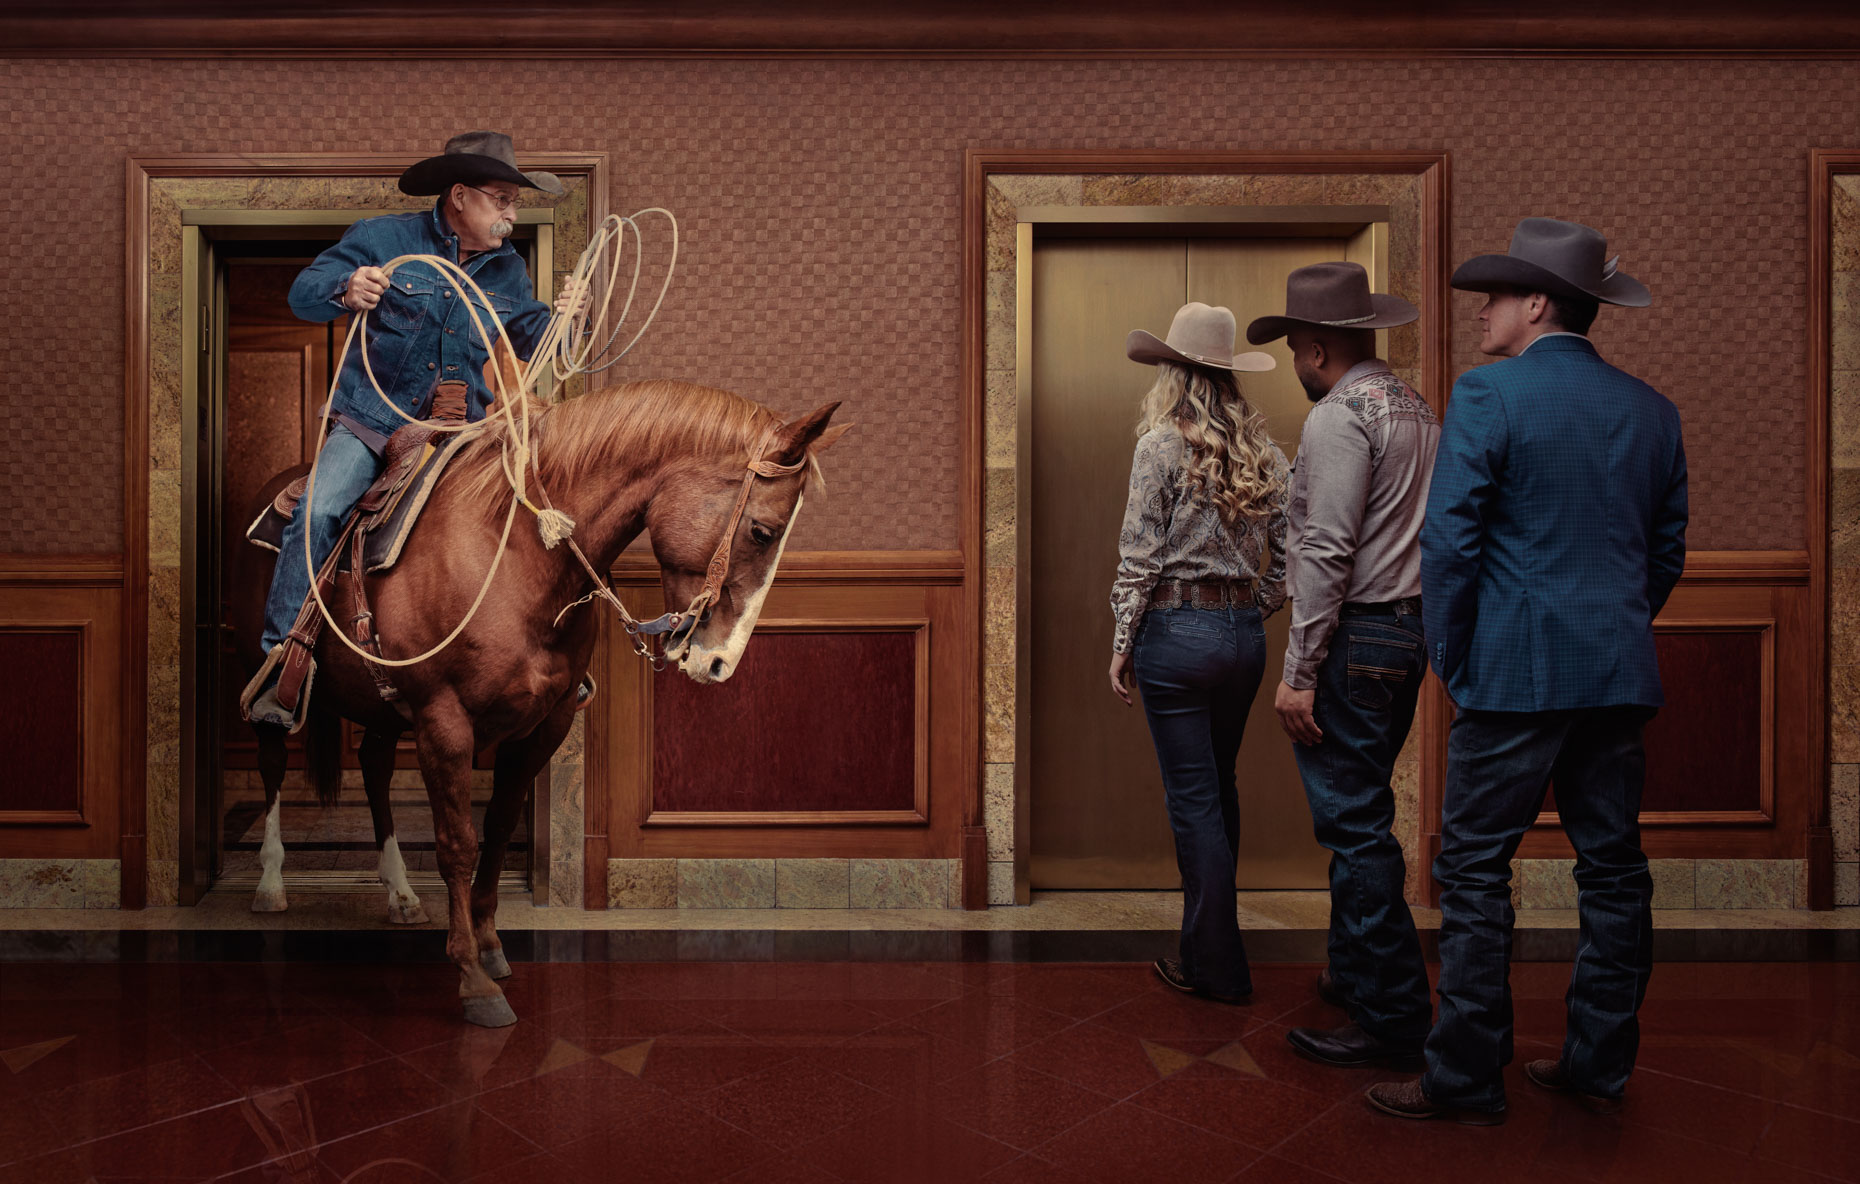 Kremer/Johnson - Conceptual Advertising Photographer - Las Vegas Convention and Visitor Authority - Wrangler National Finals Rodeo 2019 Ad